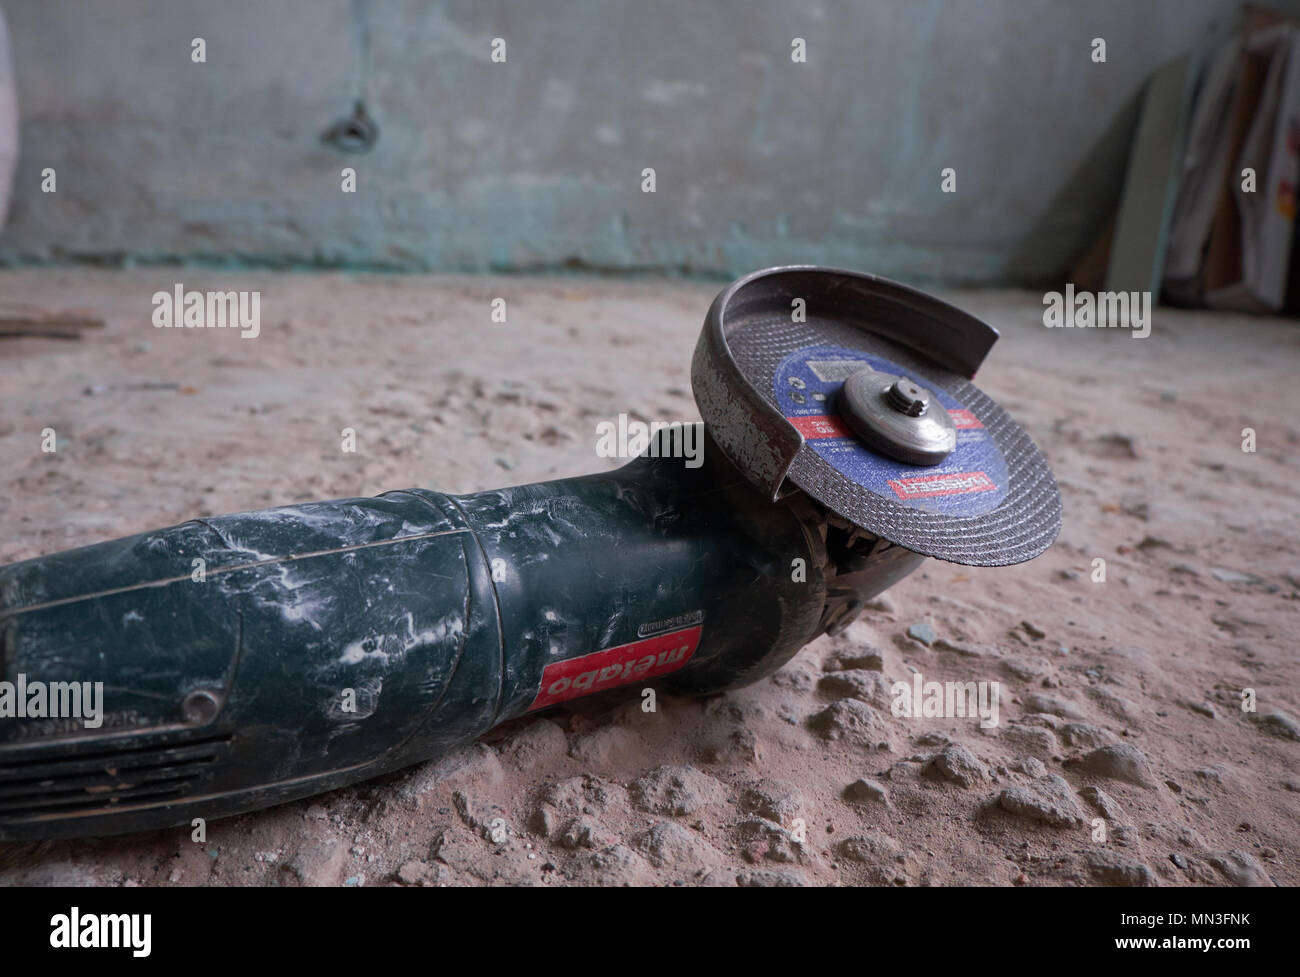 Side grinder on a floor in front of a dirty wall. Overhaul concept - Stock Image